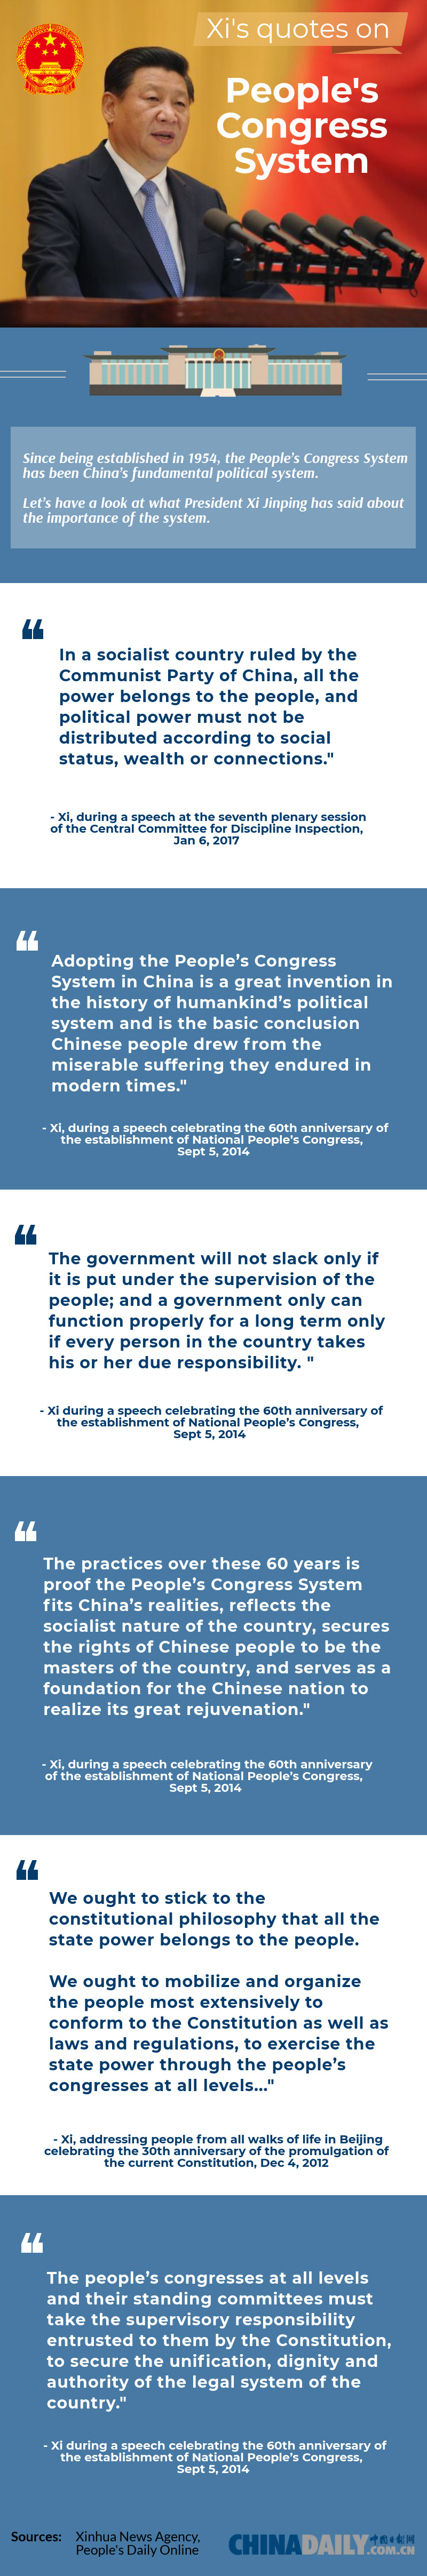 Citaten Strijd Xi : Xi s quotes on people s congress system chinadaily